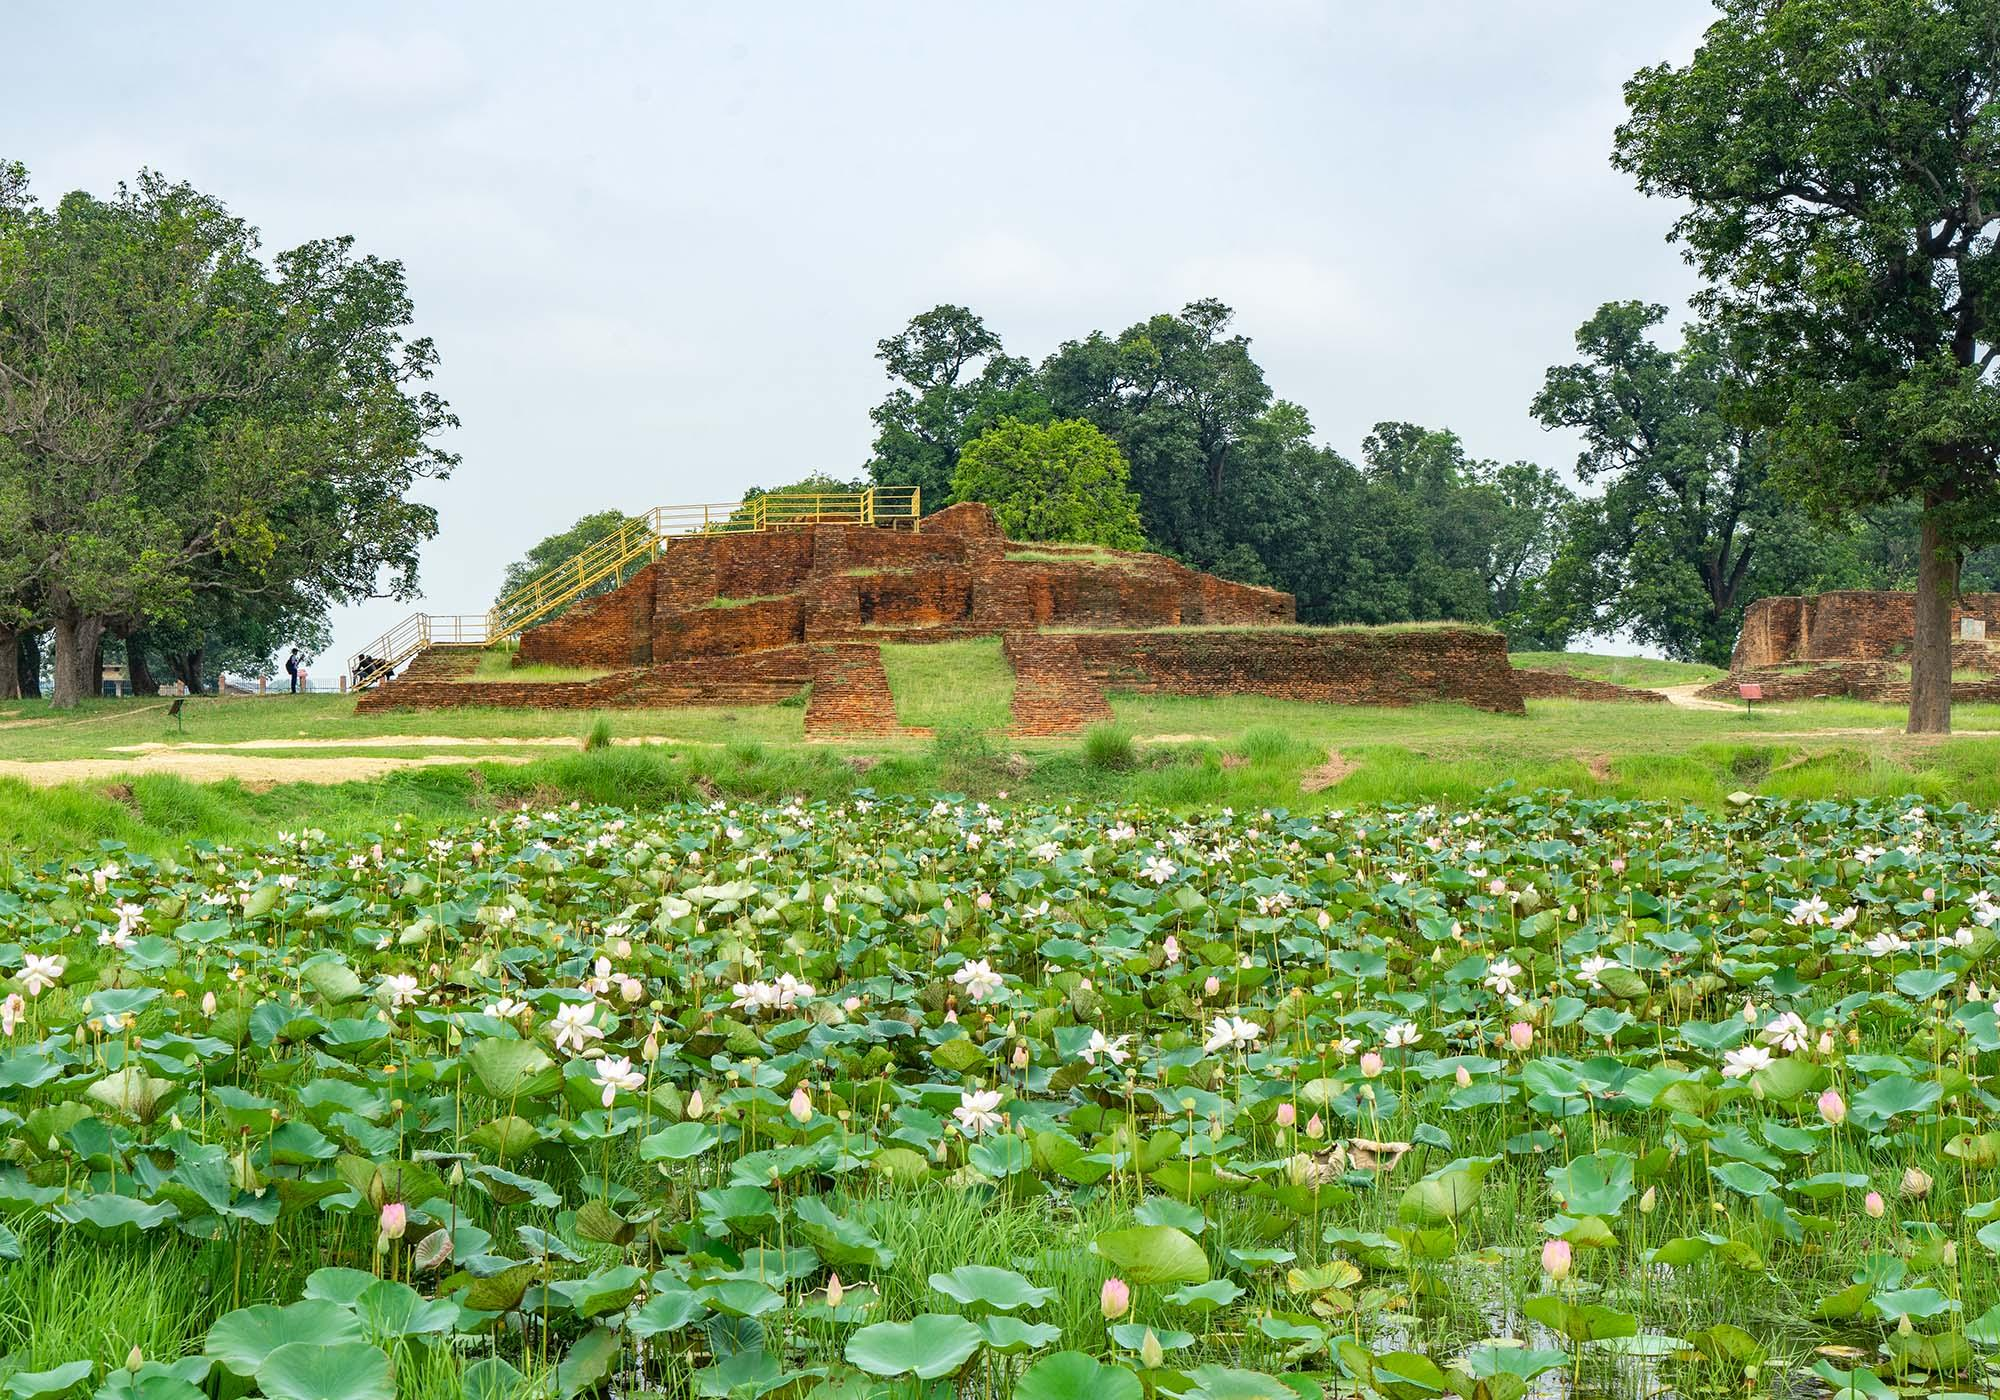 The stupa at Kudan which is believed to have been built to commemorate the meeting of King Suddhodhana and his son, Buddha, seven years after his enlightenment. – © Michael Turtle